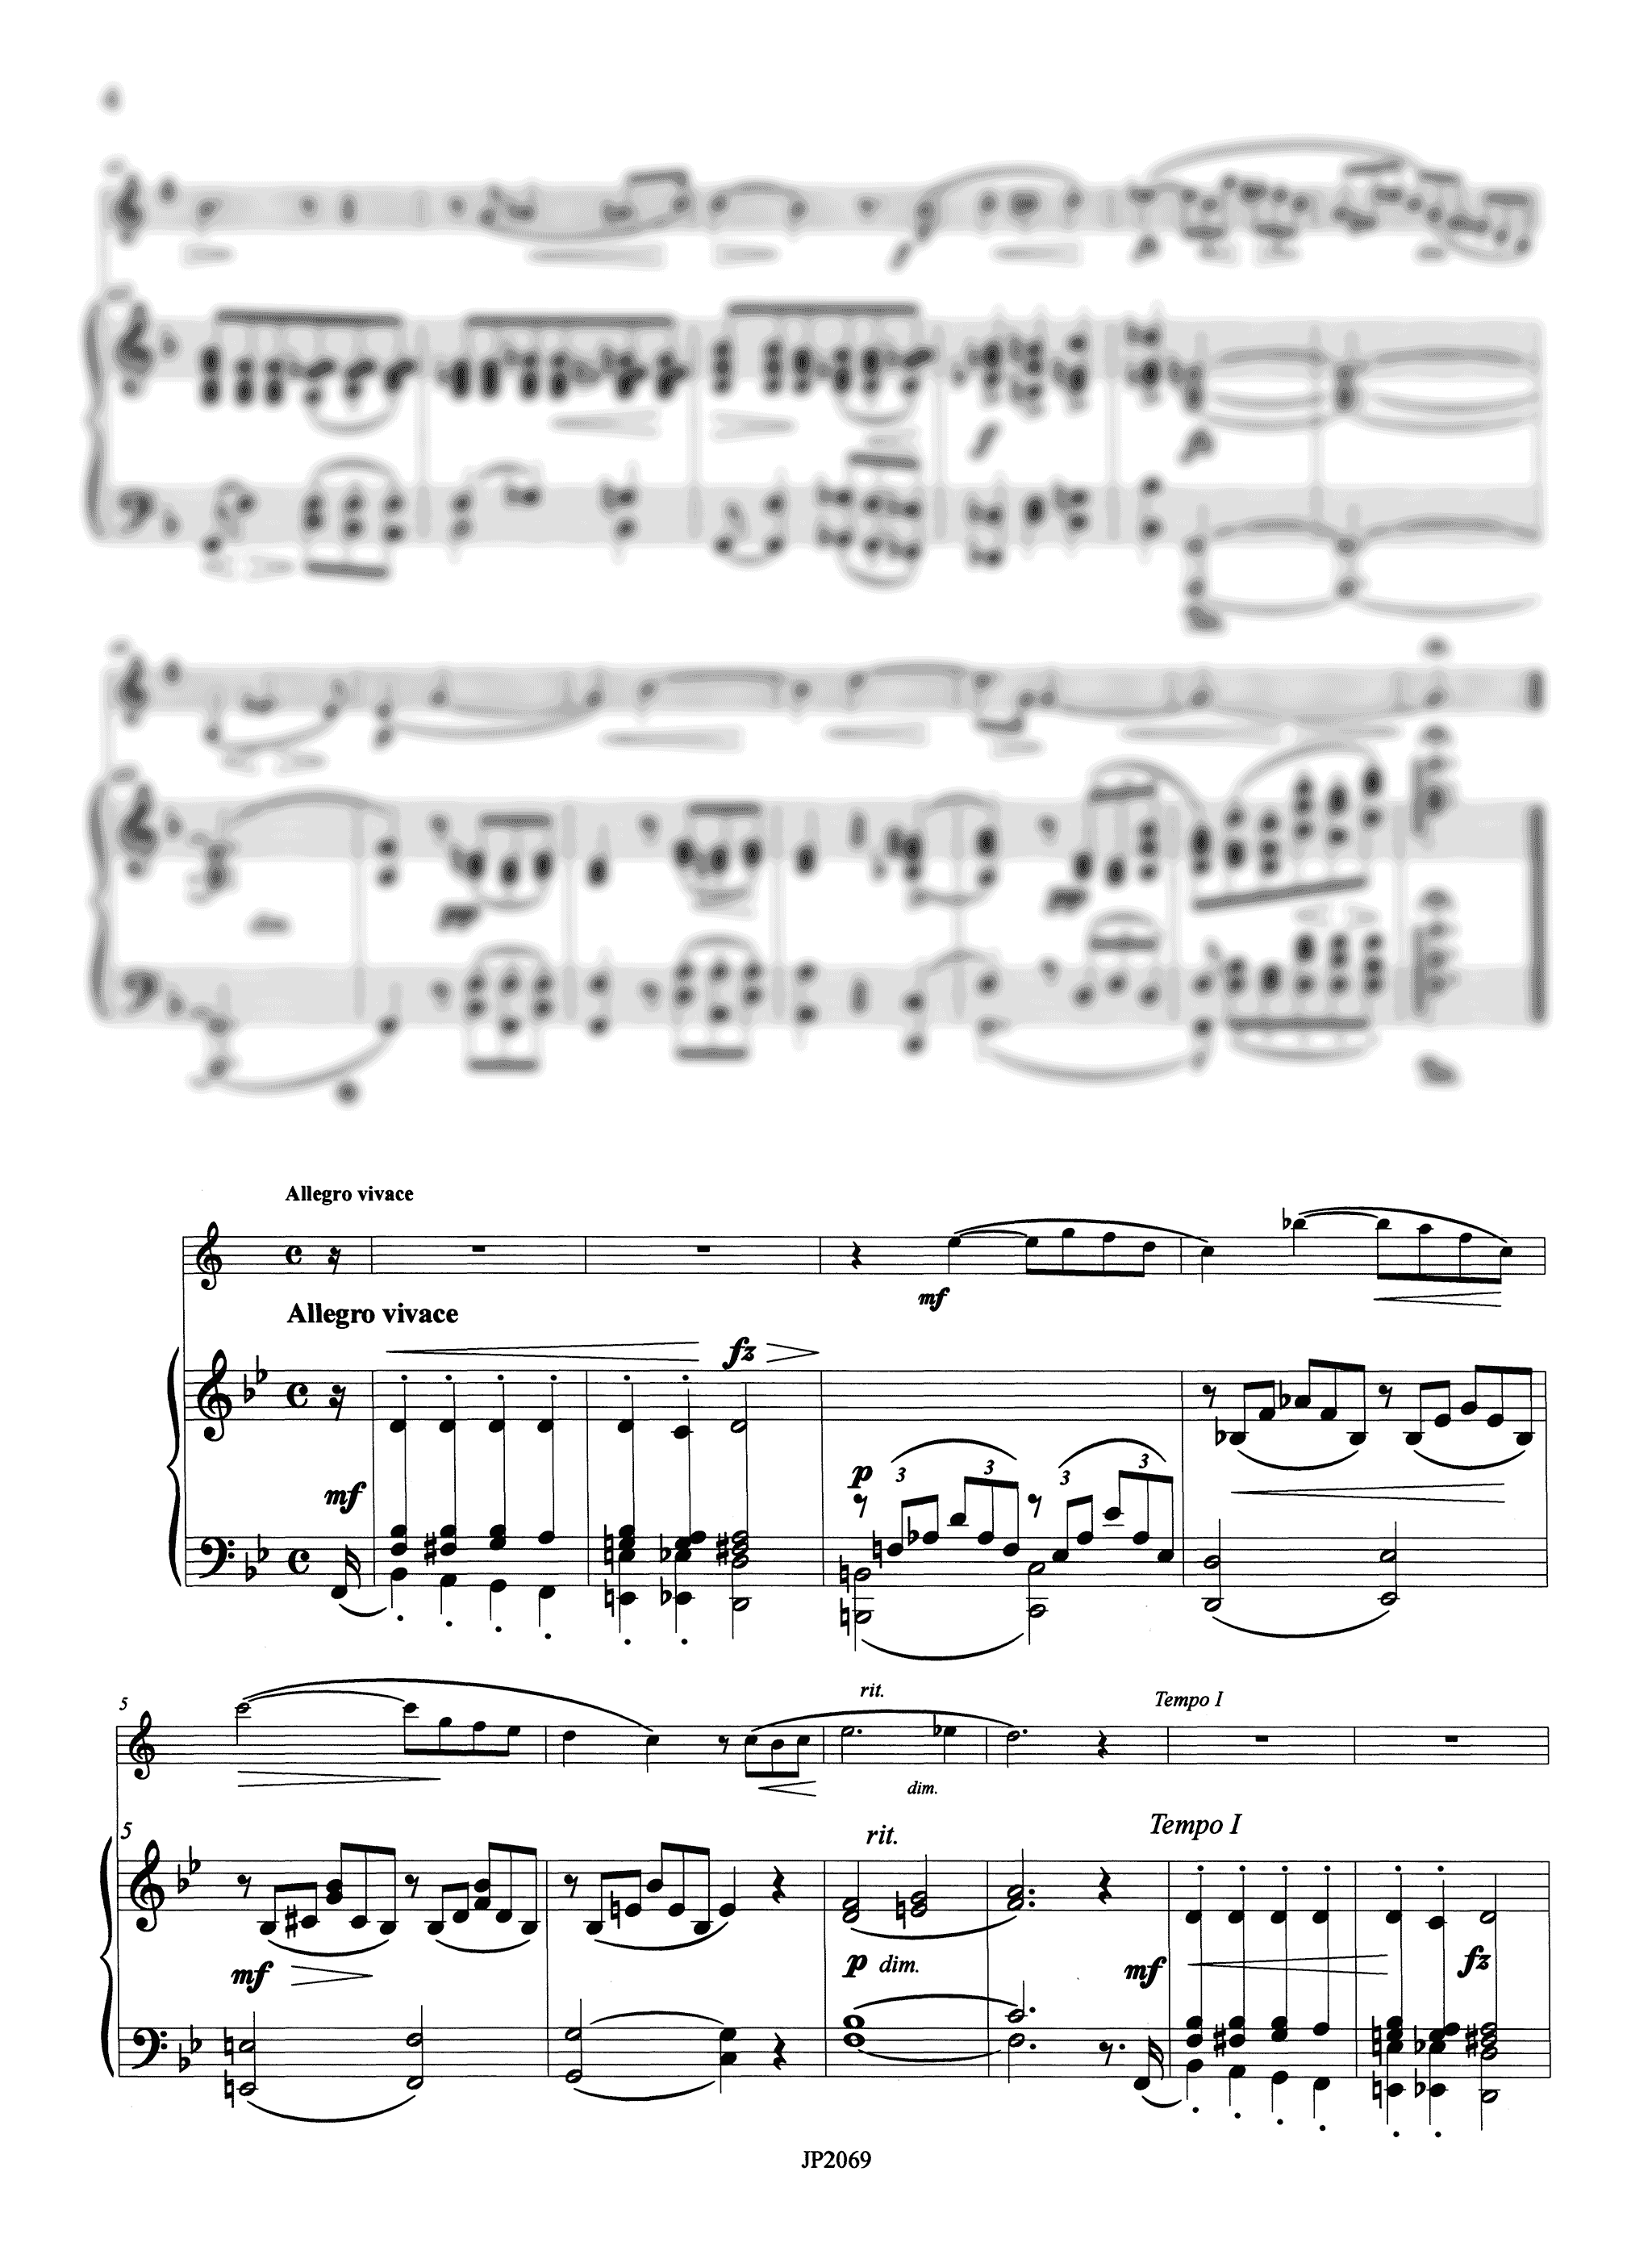 Gade Fantasy Pieces, Op. 43 - Movement 2